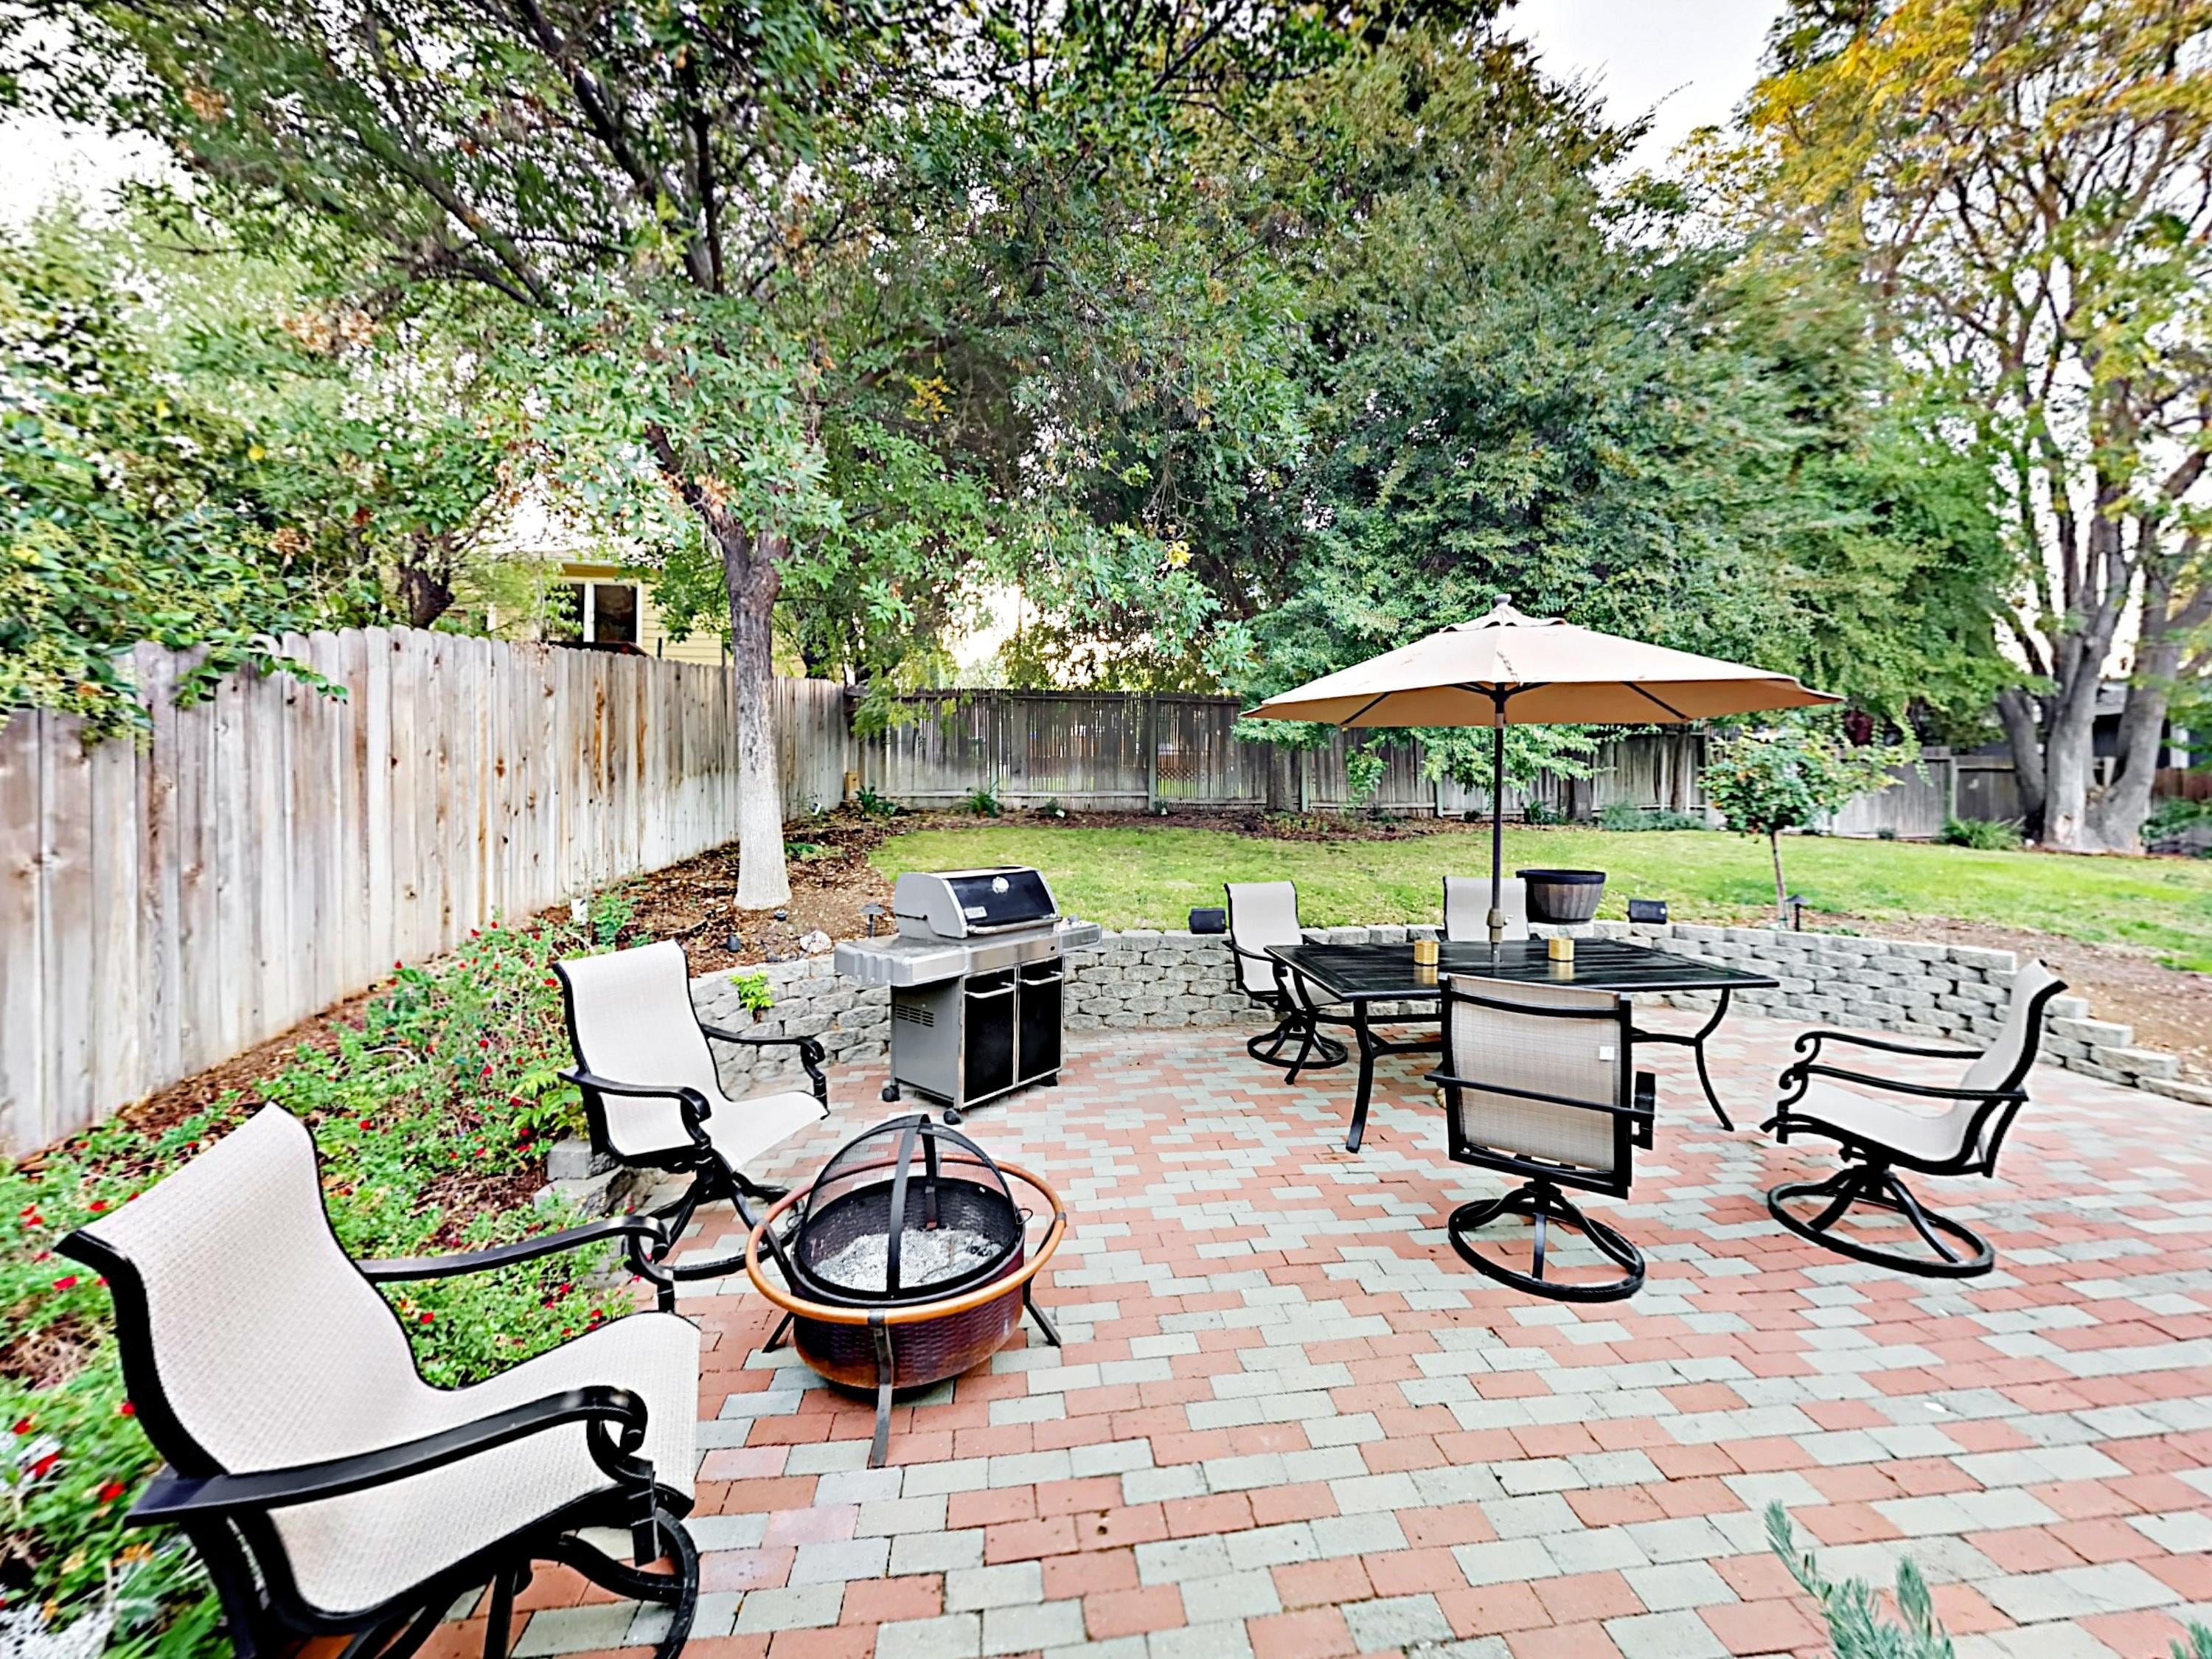 The private patio has ample seating, a gas grill, and a fire pit for s'mores and conversation.